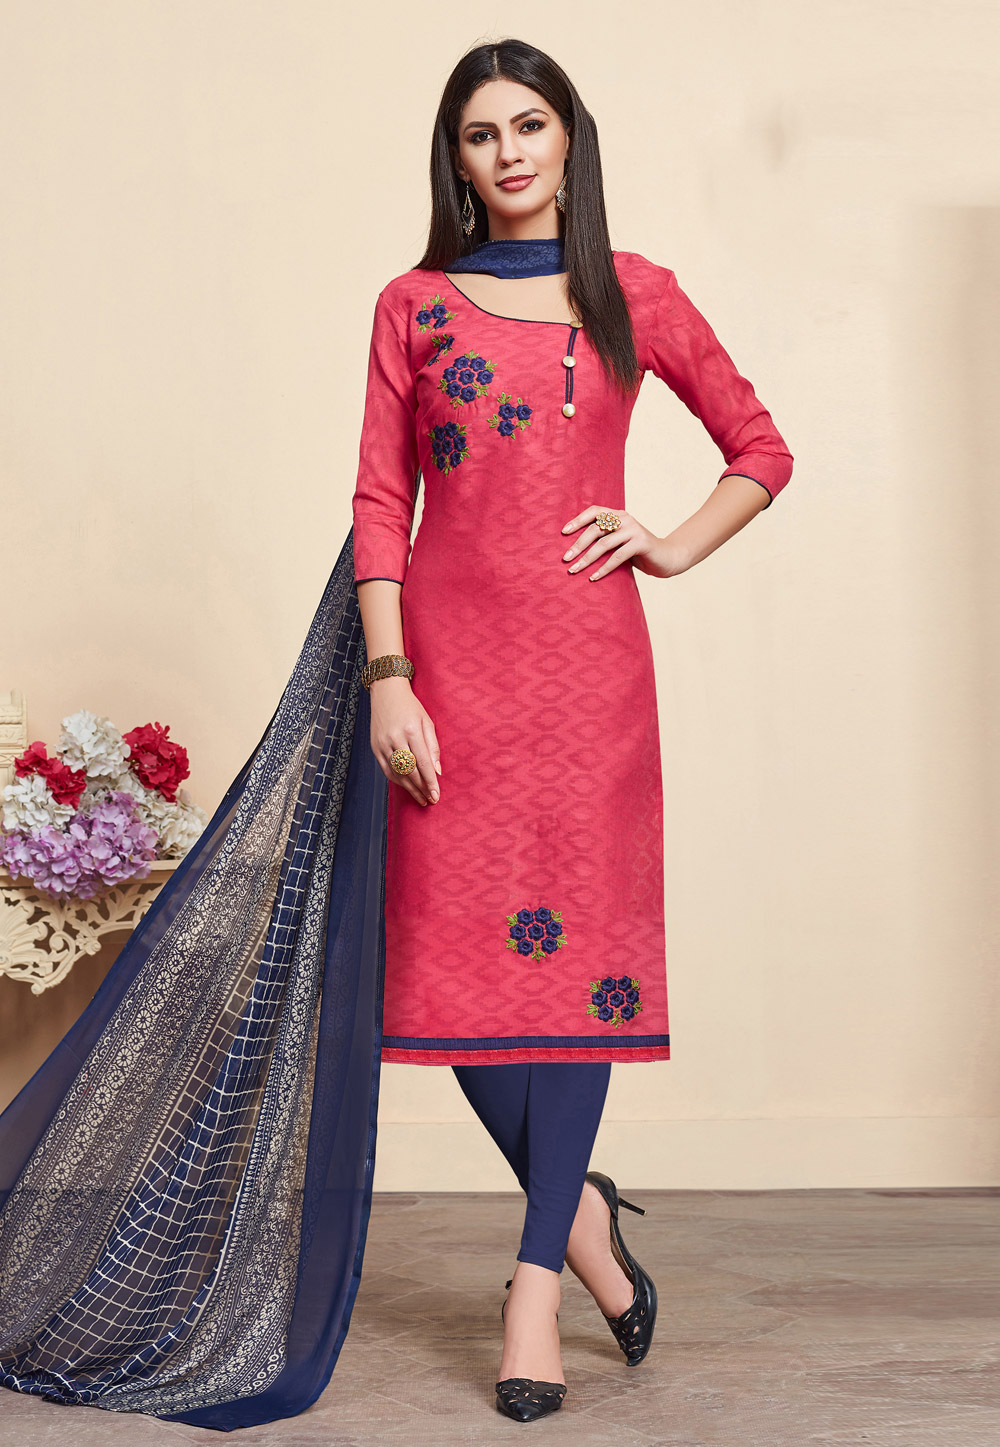 Shaded Pink Jacquard Churidar Suit 176987